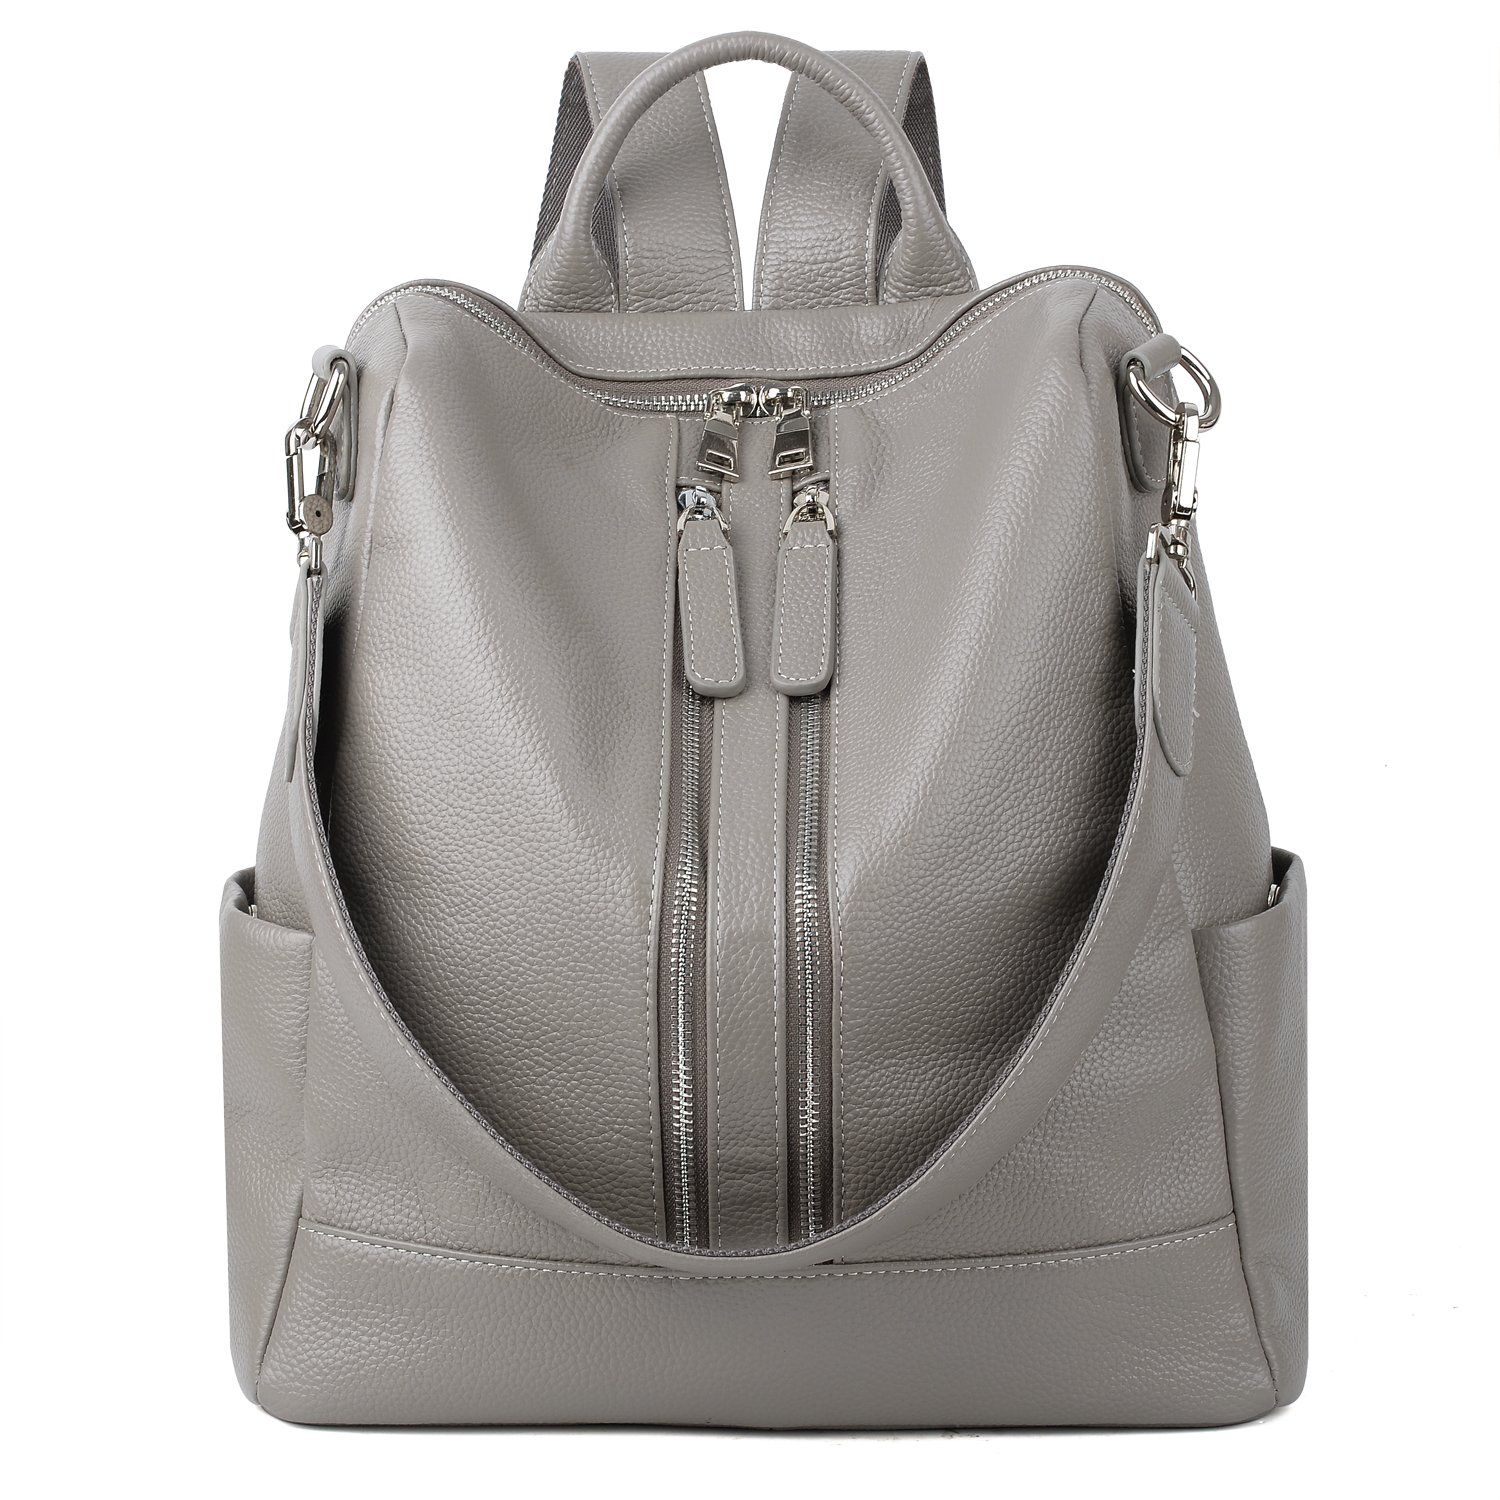 Grey Yaluxe Women's Large Leather Backpack Versatile Shoulder Bag Congreenible Purse Upgraded